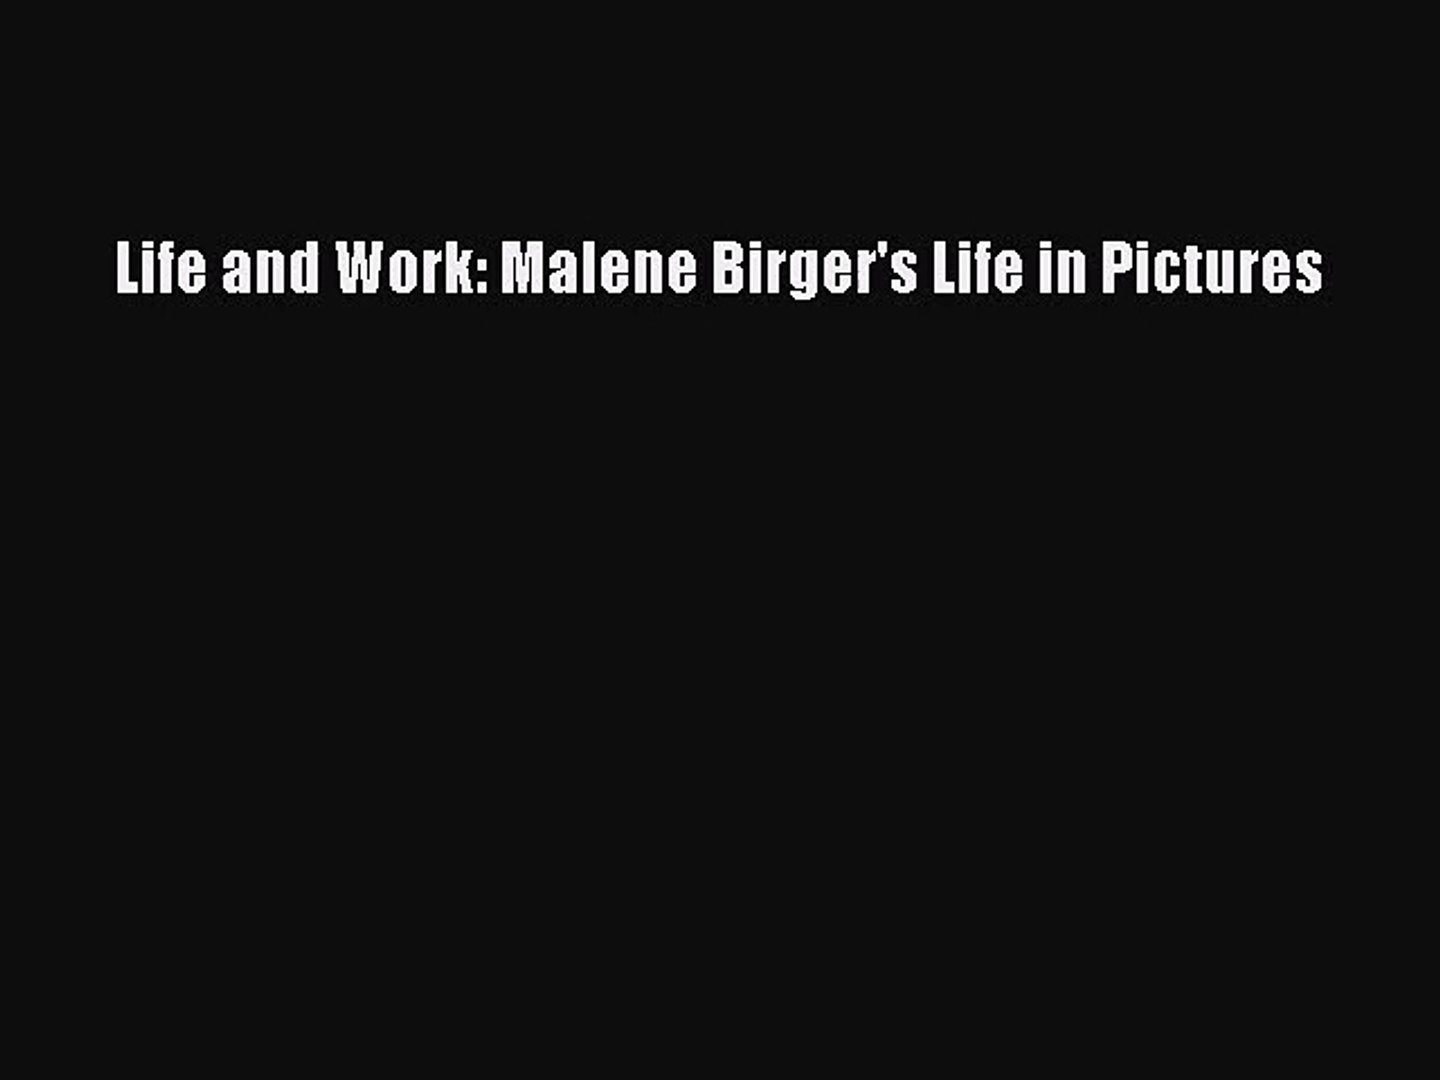 Life and Work: Malene Birger's Life in Pictures [PDF Download] Life and Work: Malene Birger